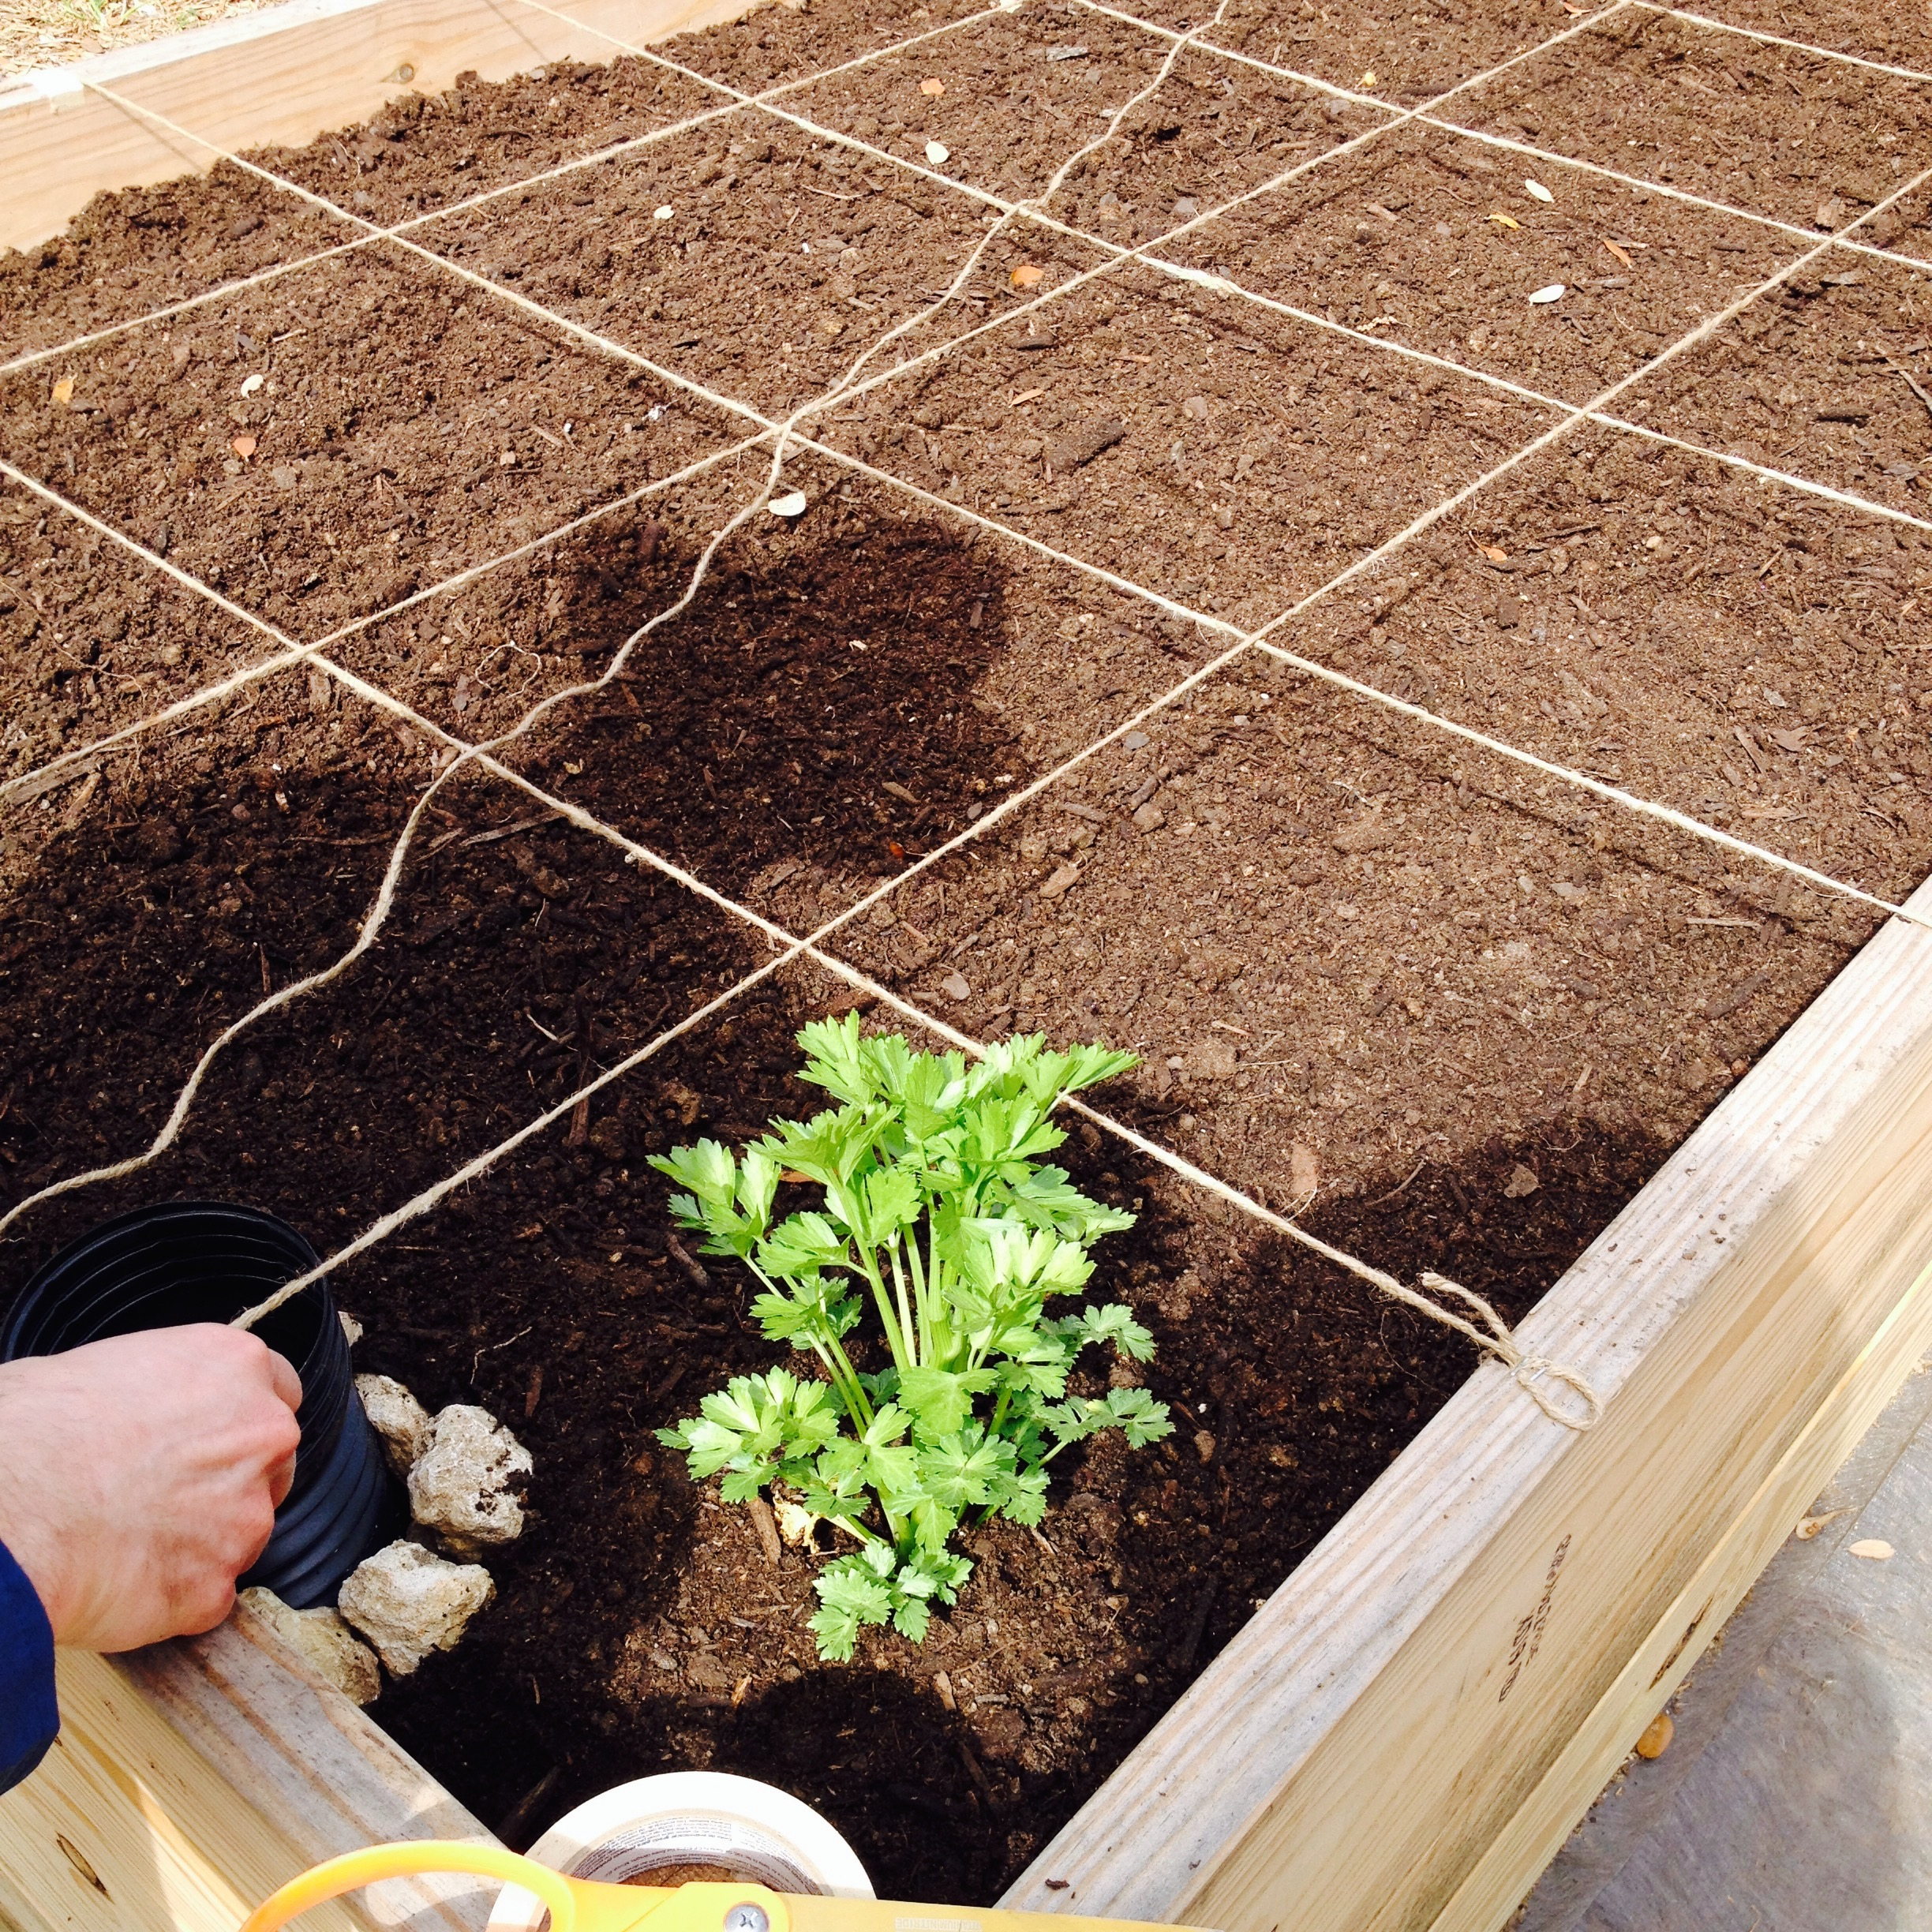 Filled with dirt, ready for square-foot gardening